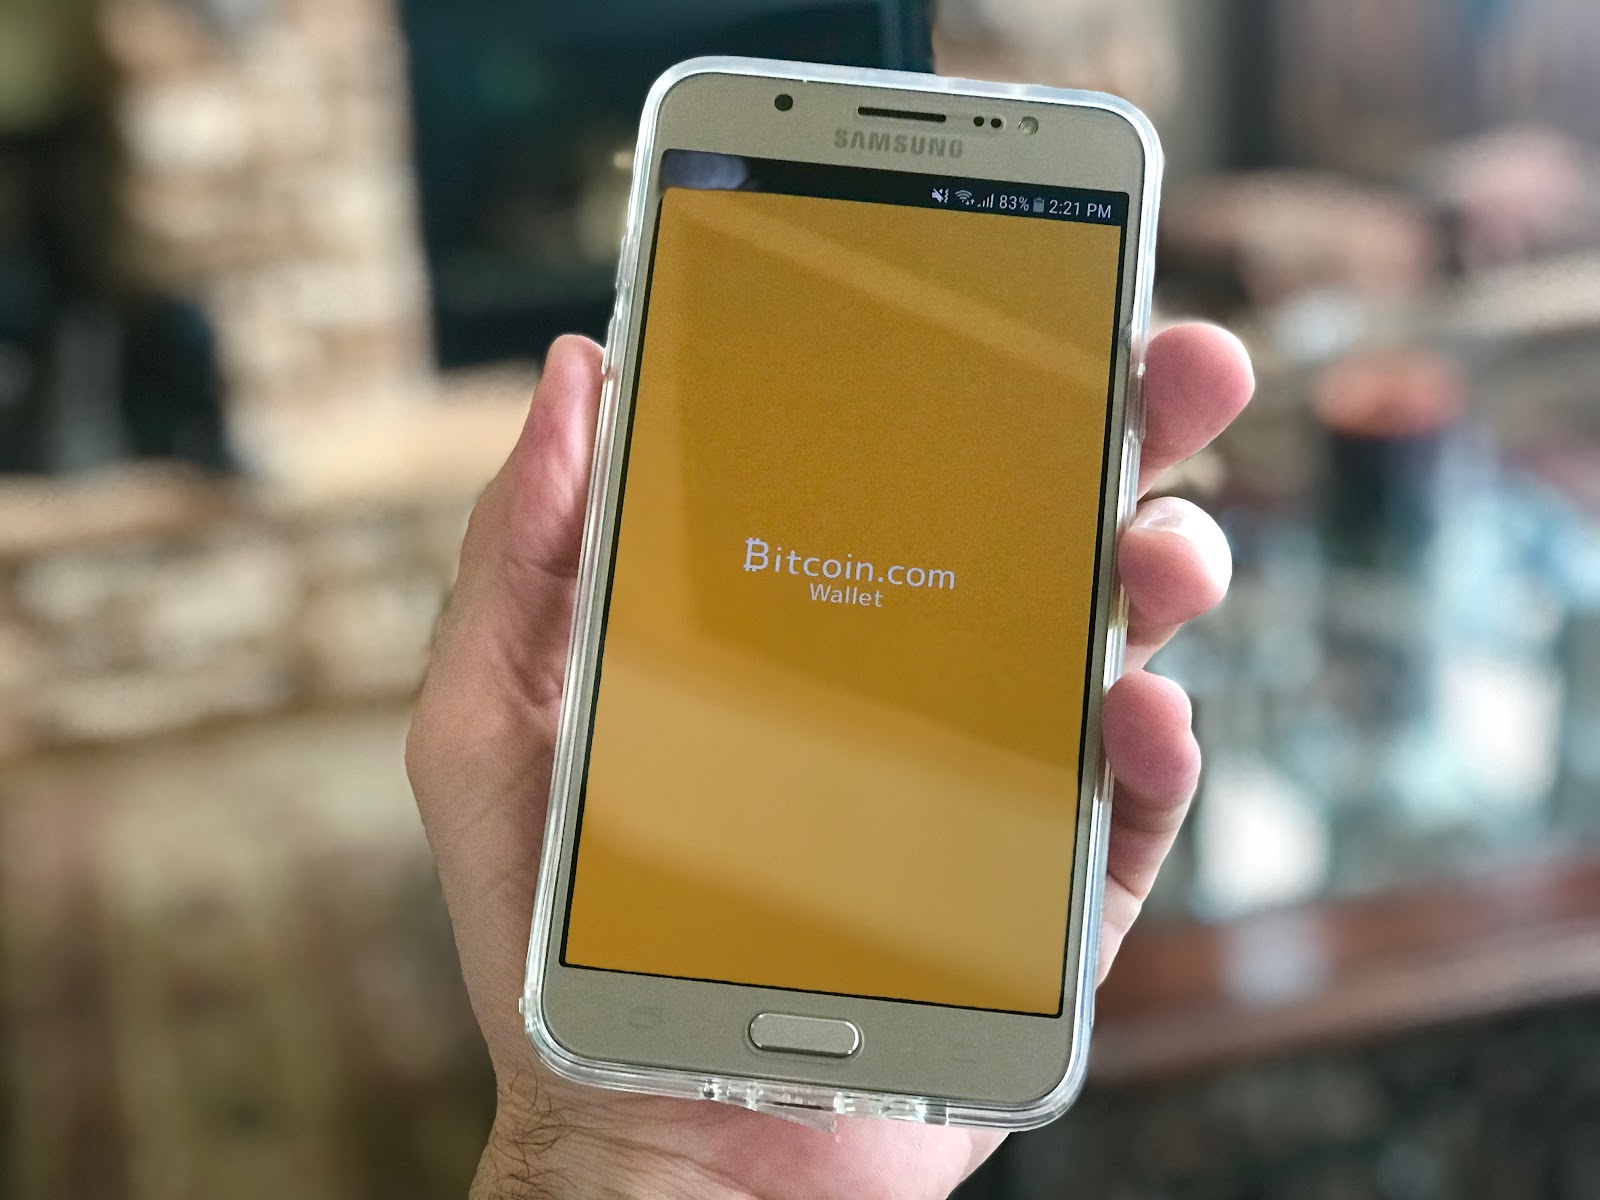 bitcoin wallet app on samsung mobile